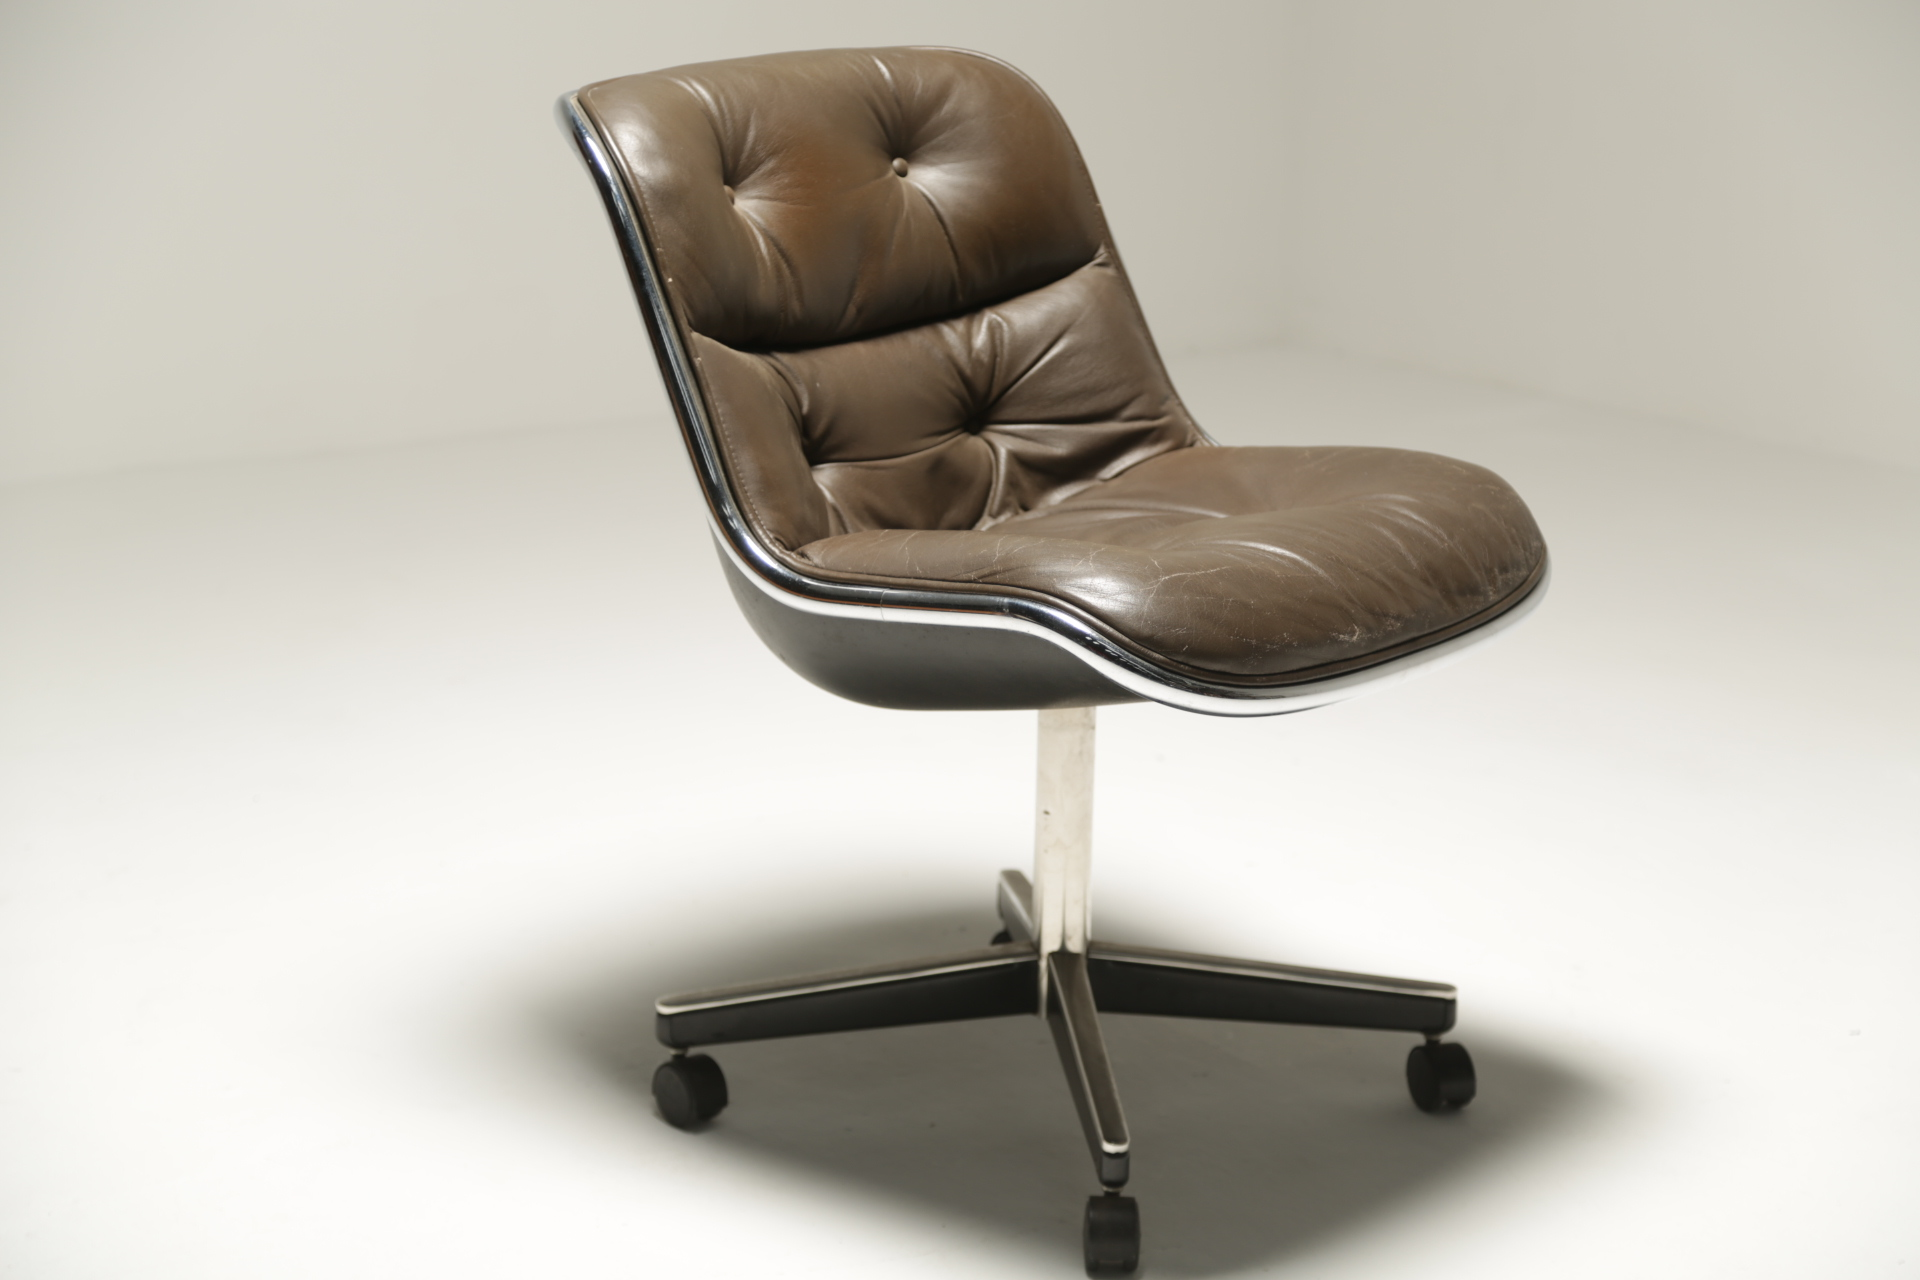 Leather executive desk chair by Charles Pollock for Knoll office chairs